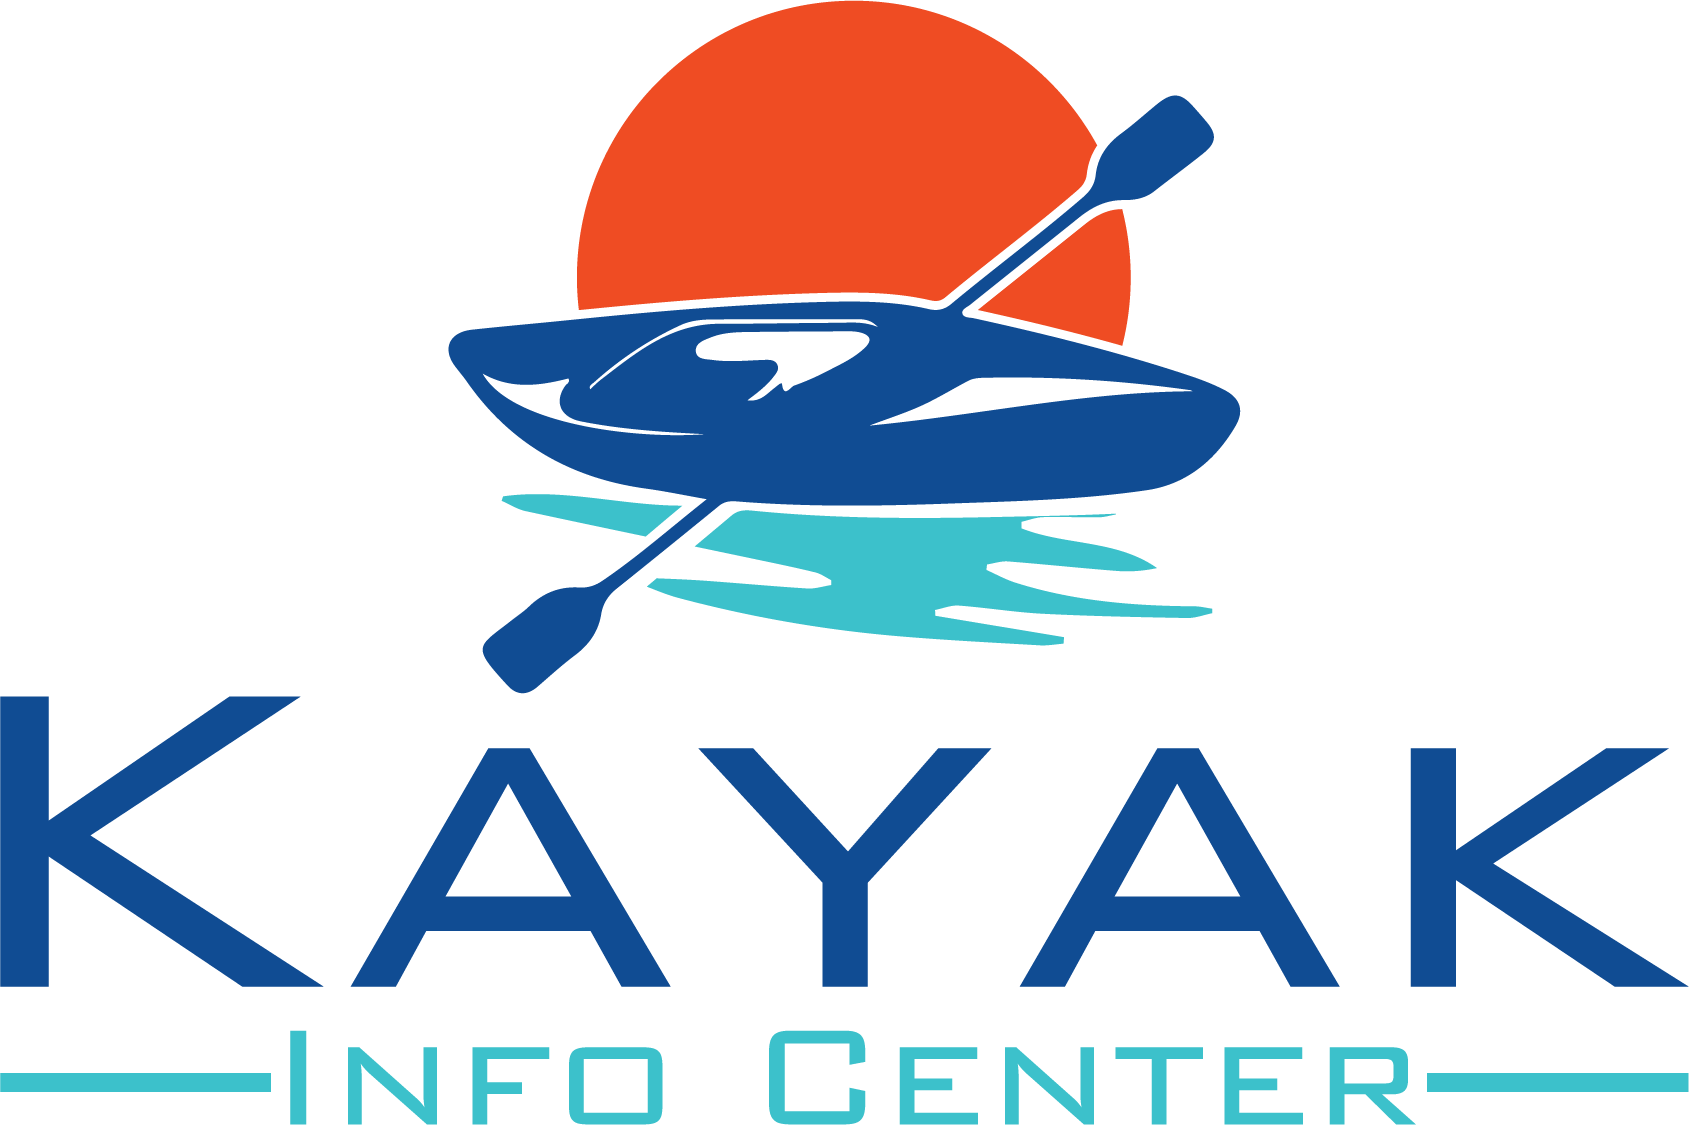 Kayak Info Center